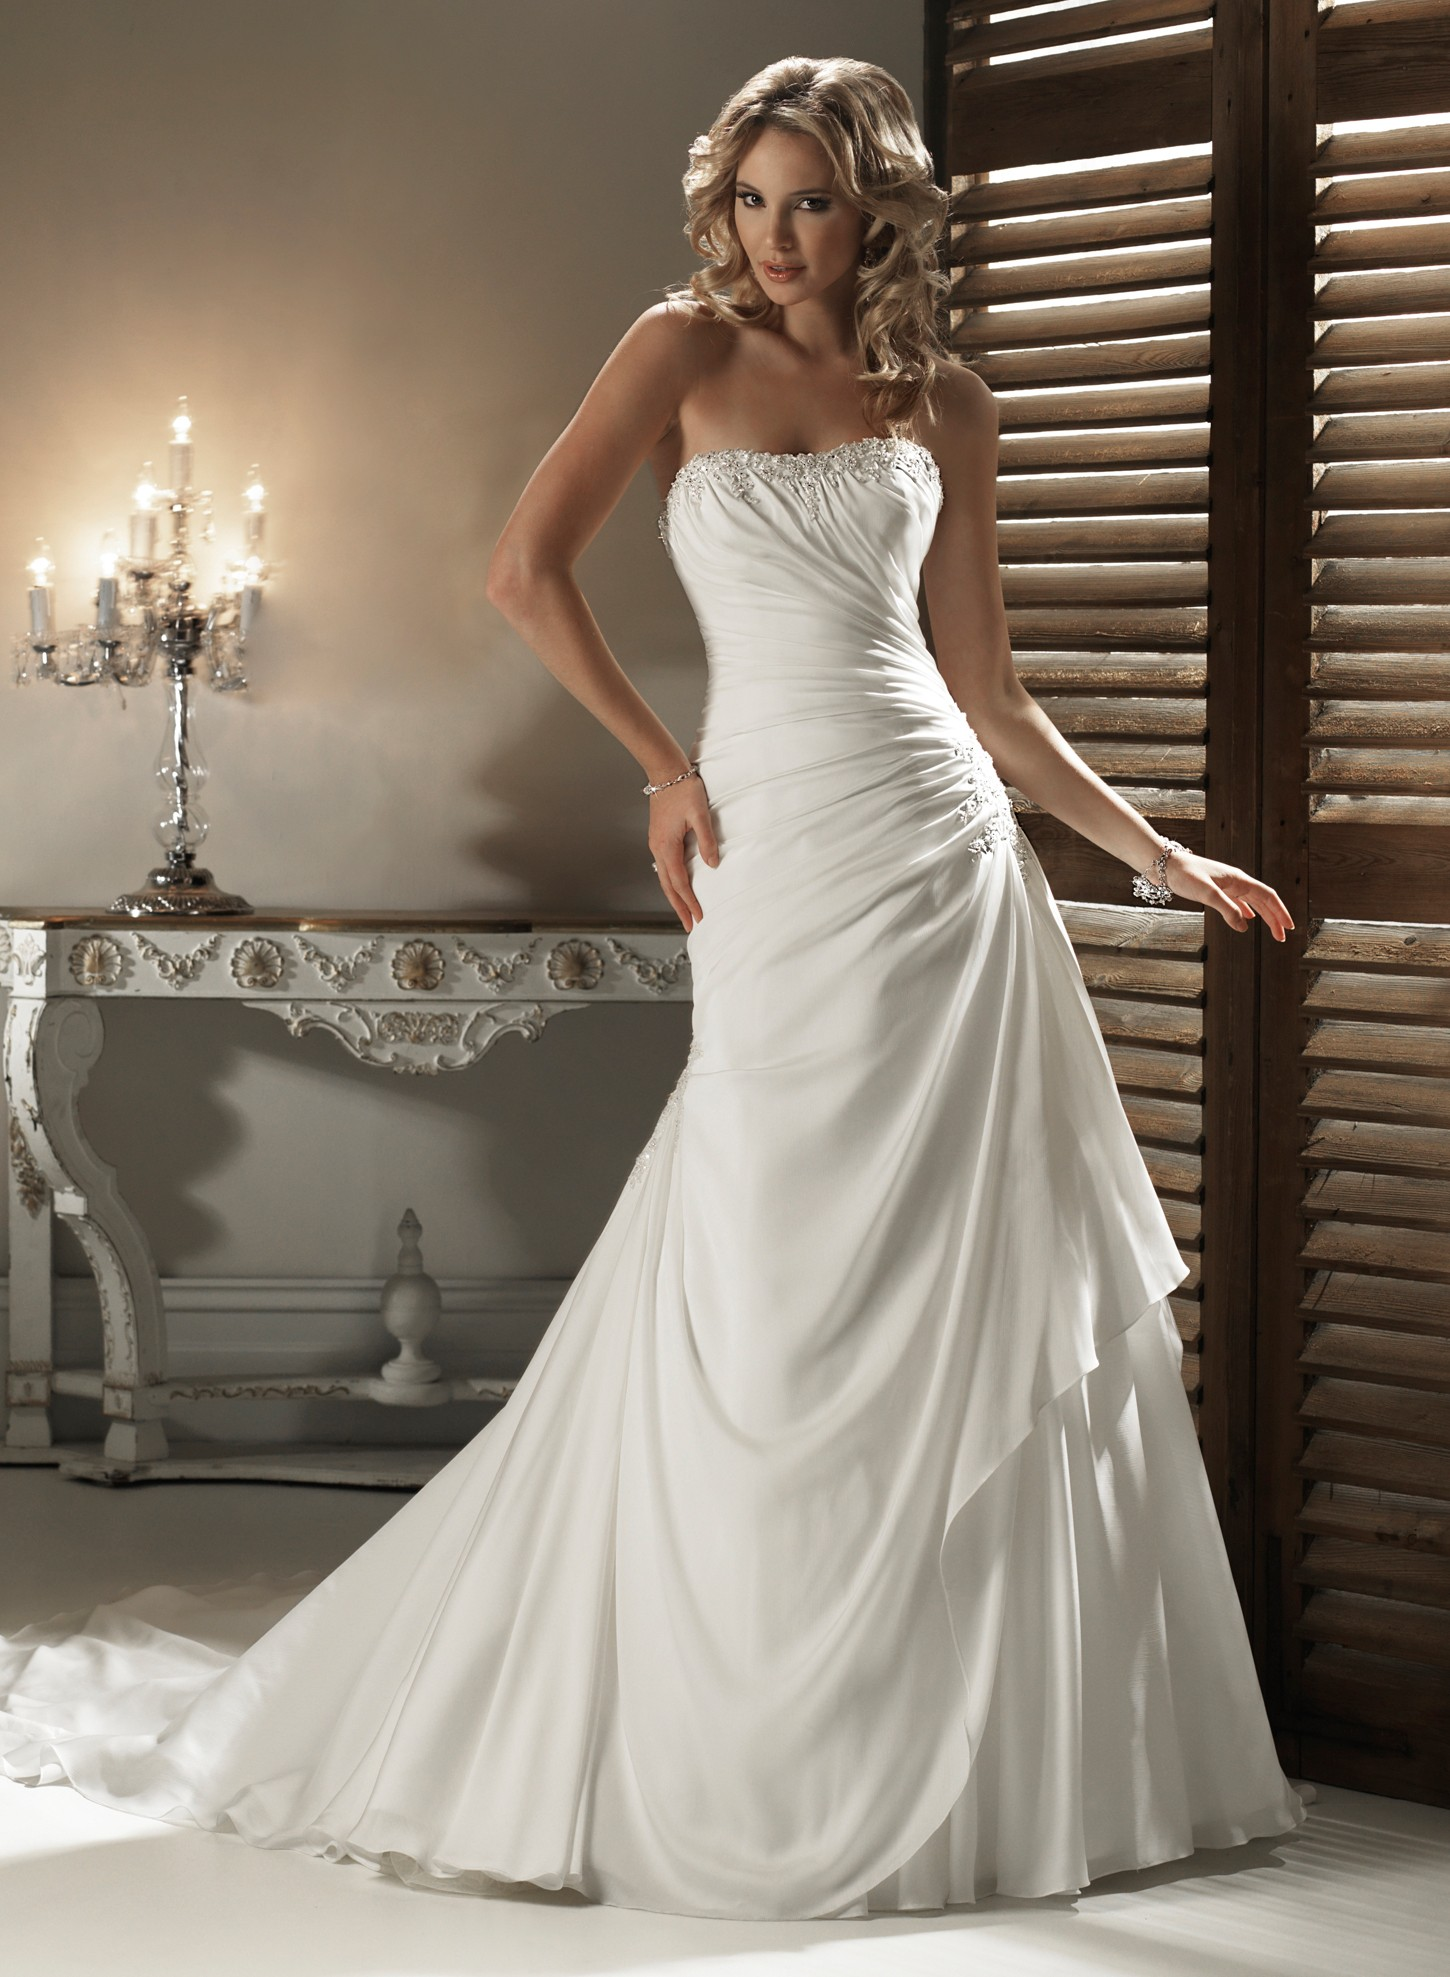 Bride Gowns 21 Gorgeous A Line Wedding Dresses Ideas